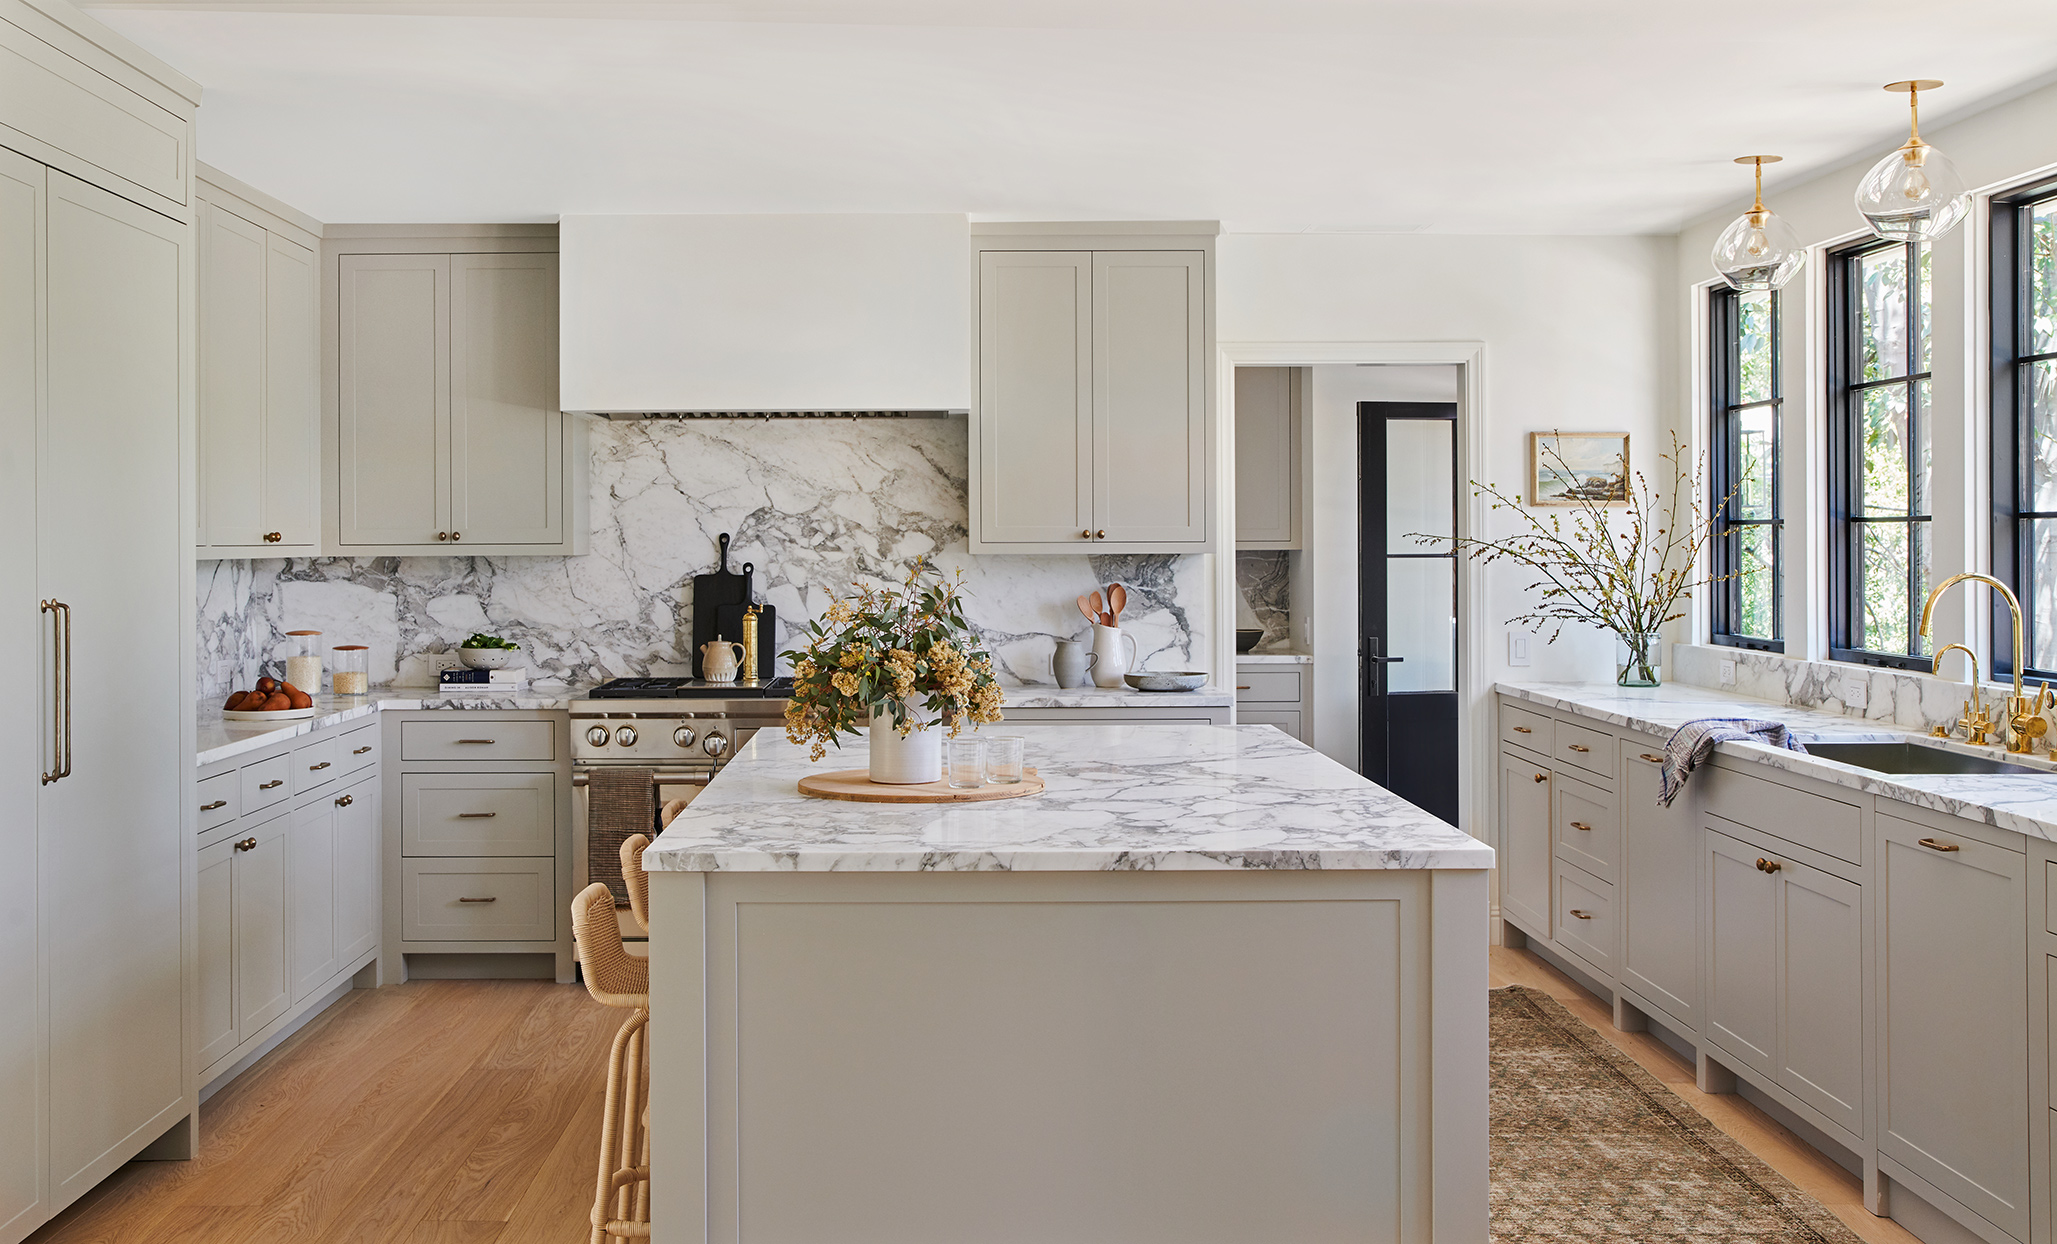 marble counter top and backsplash neutral color kitchen